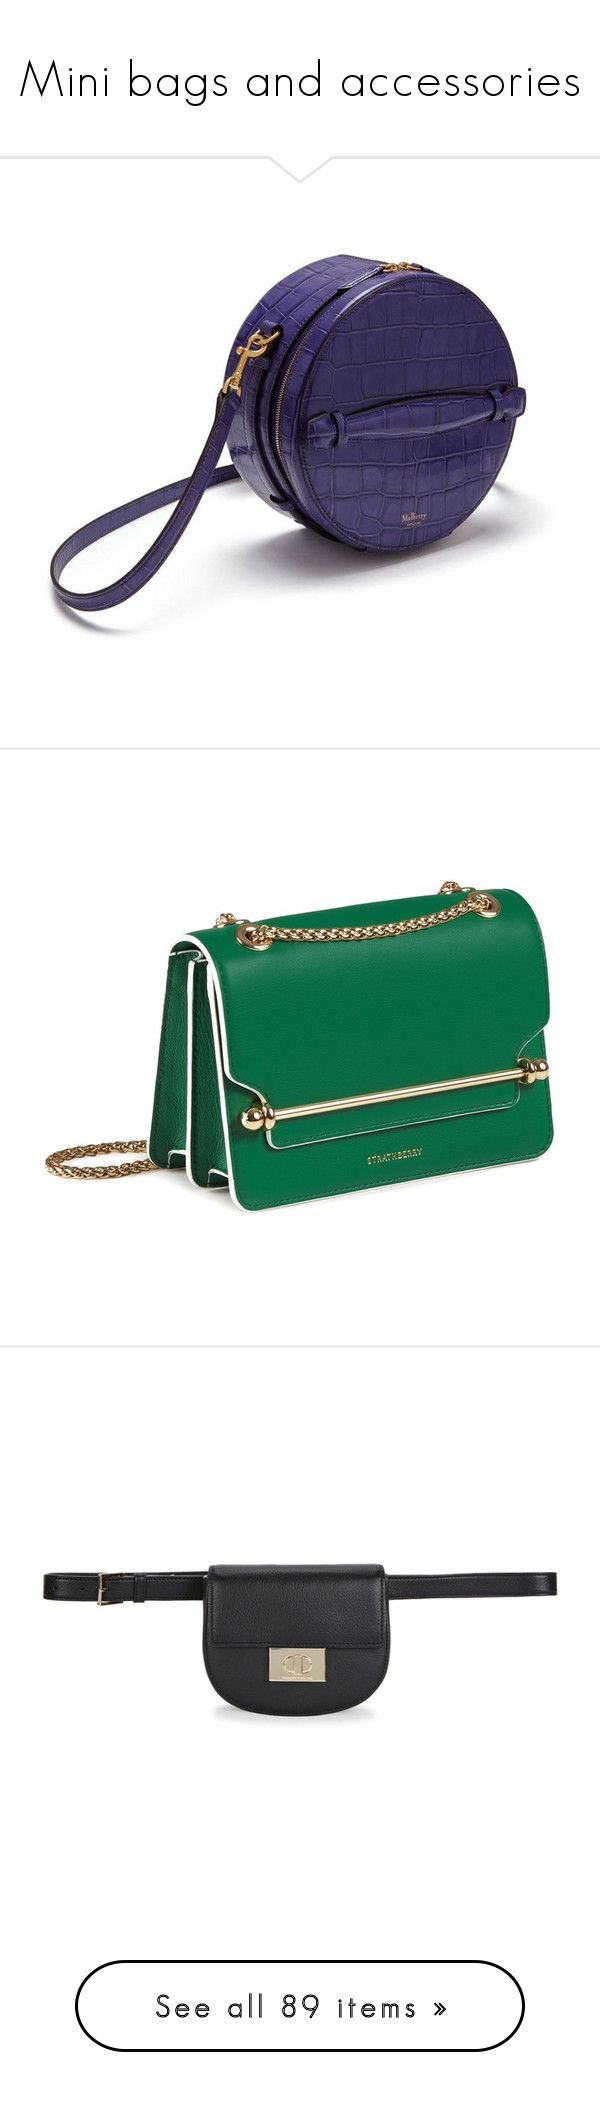 """""""Mini bags and accessories"""" by idetached ❤ liked on Polyvore featuring bags, luggage, handbags, leather cross body handbags, green leather handbag, mini cross body purse, genuine leather handbags, leather handbags, kate spade and leather strap belt"""